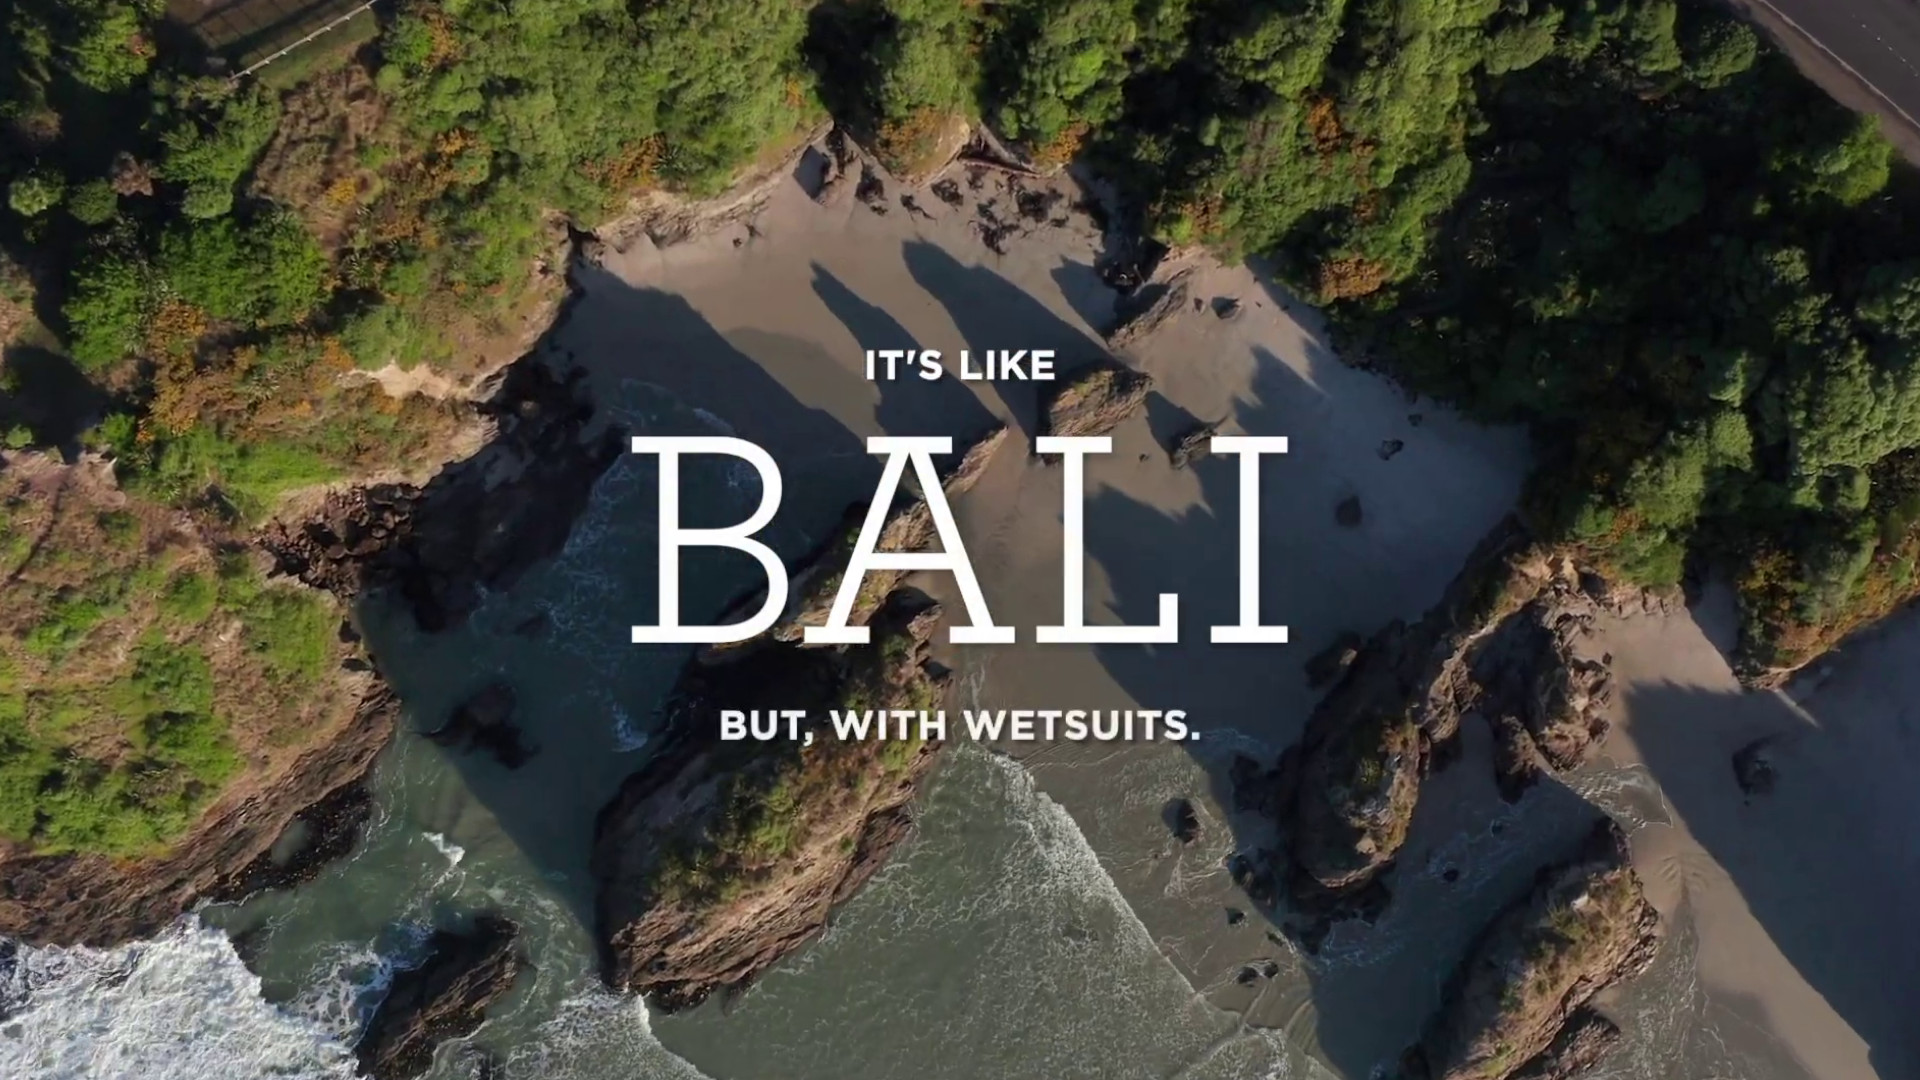 It's Like Bali, Plan D City Tourism Campaign by Dunedin NZ